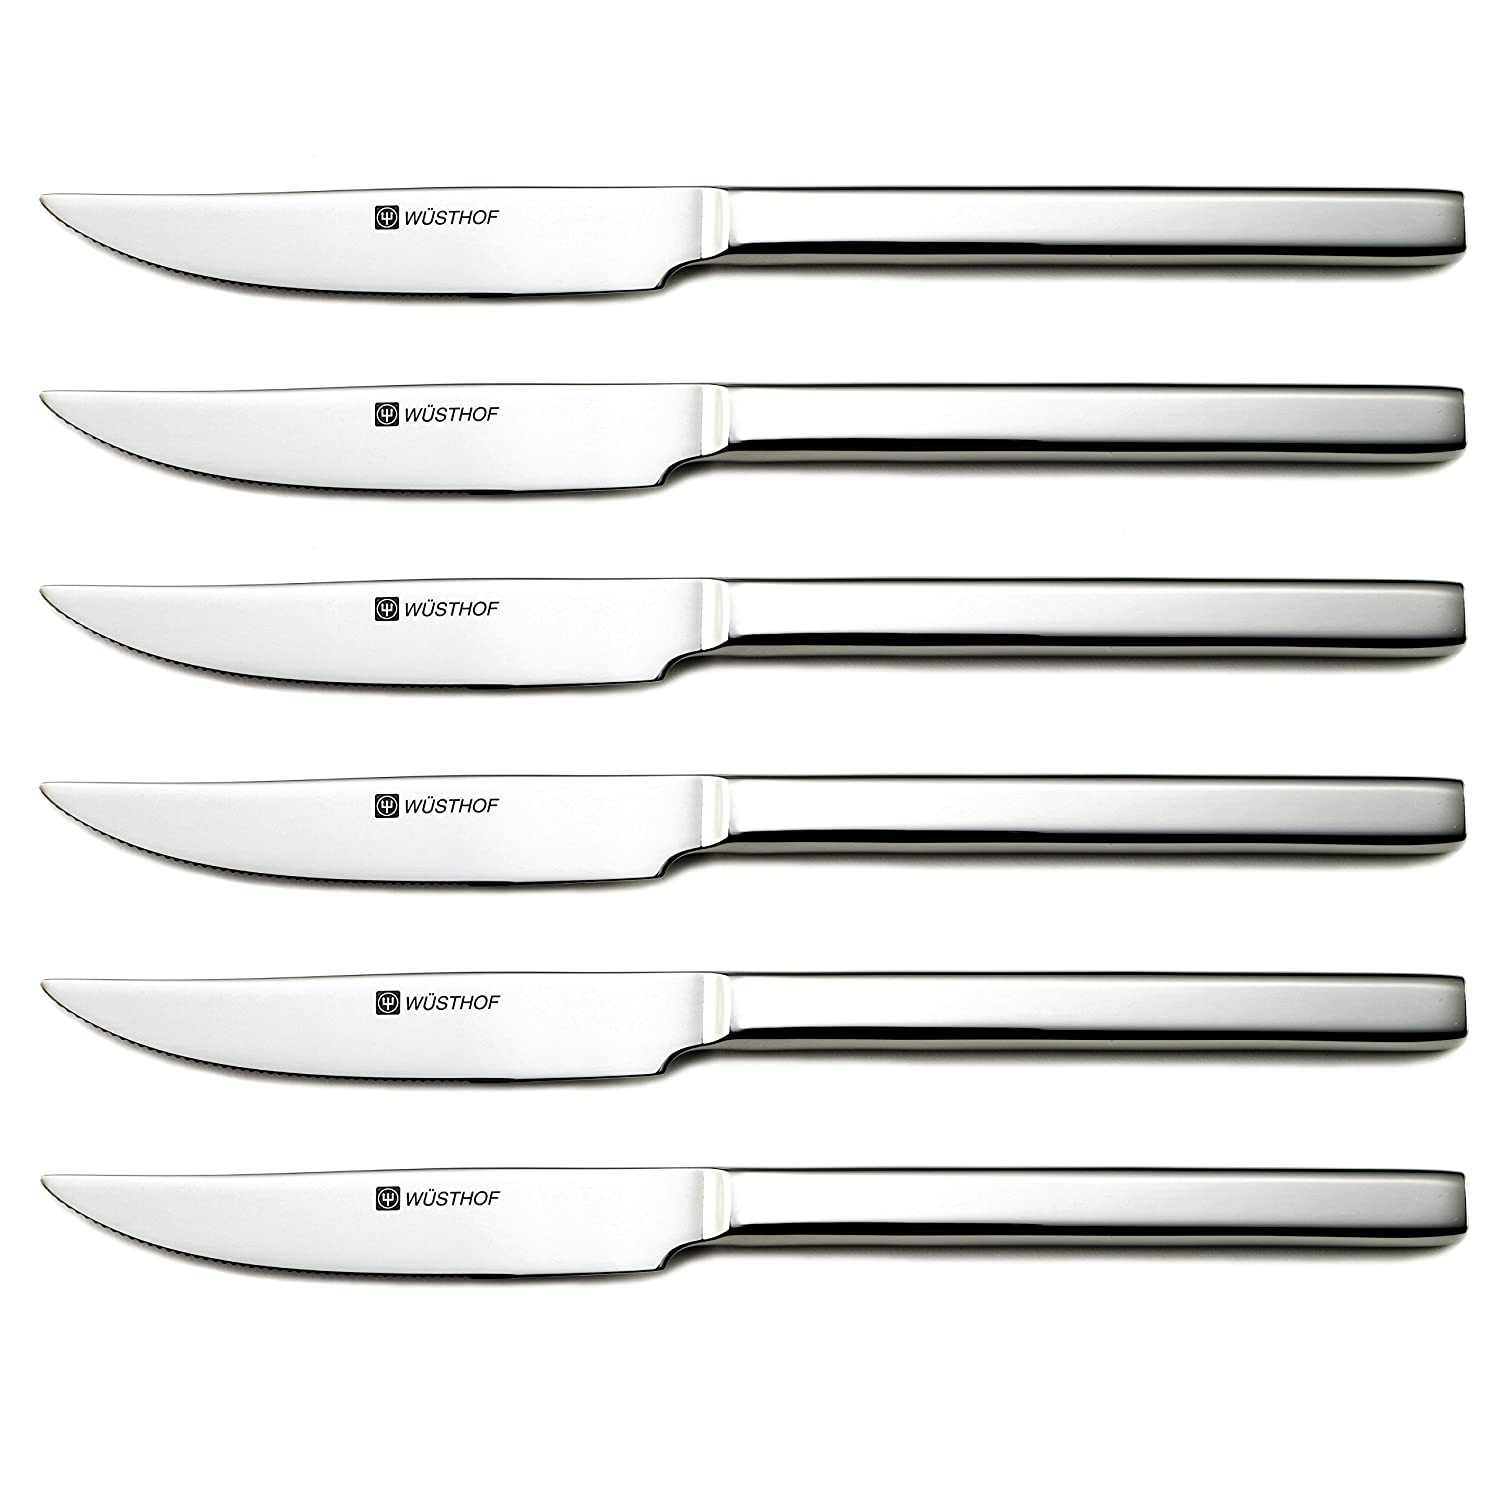 Wüsthof 8566 Stainless Steak Knife Set Silver